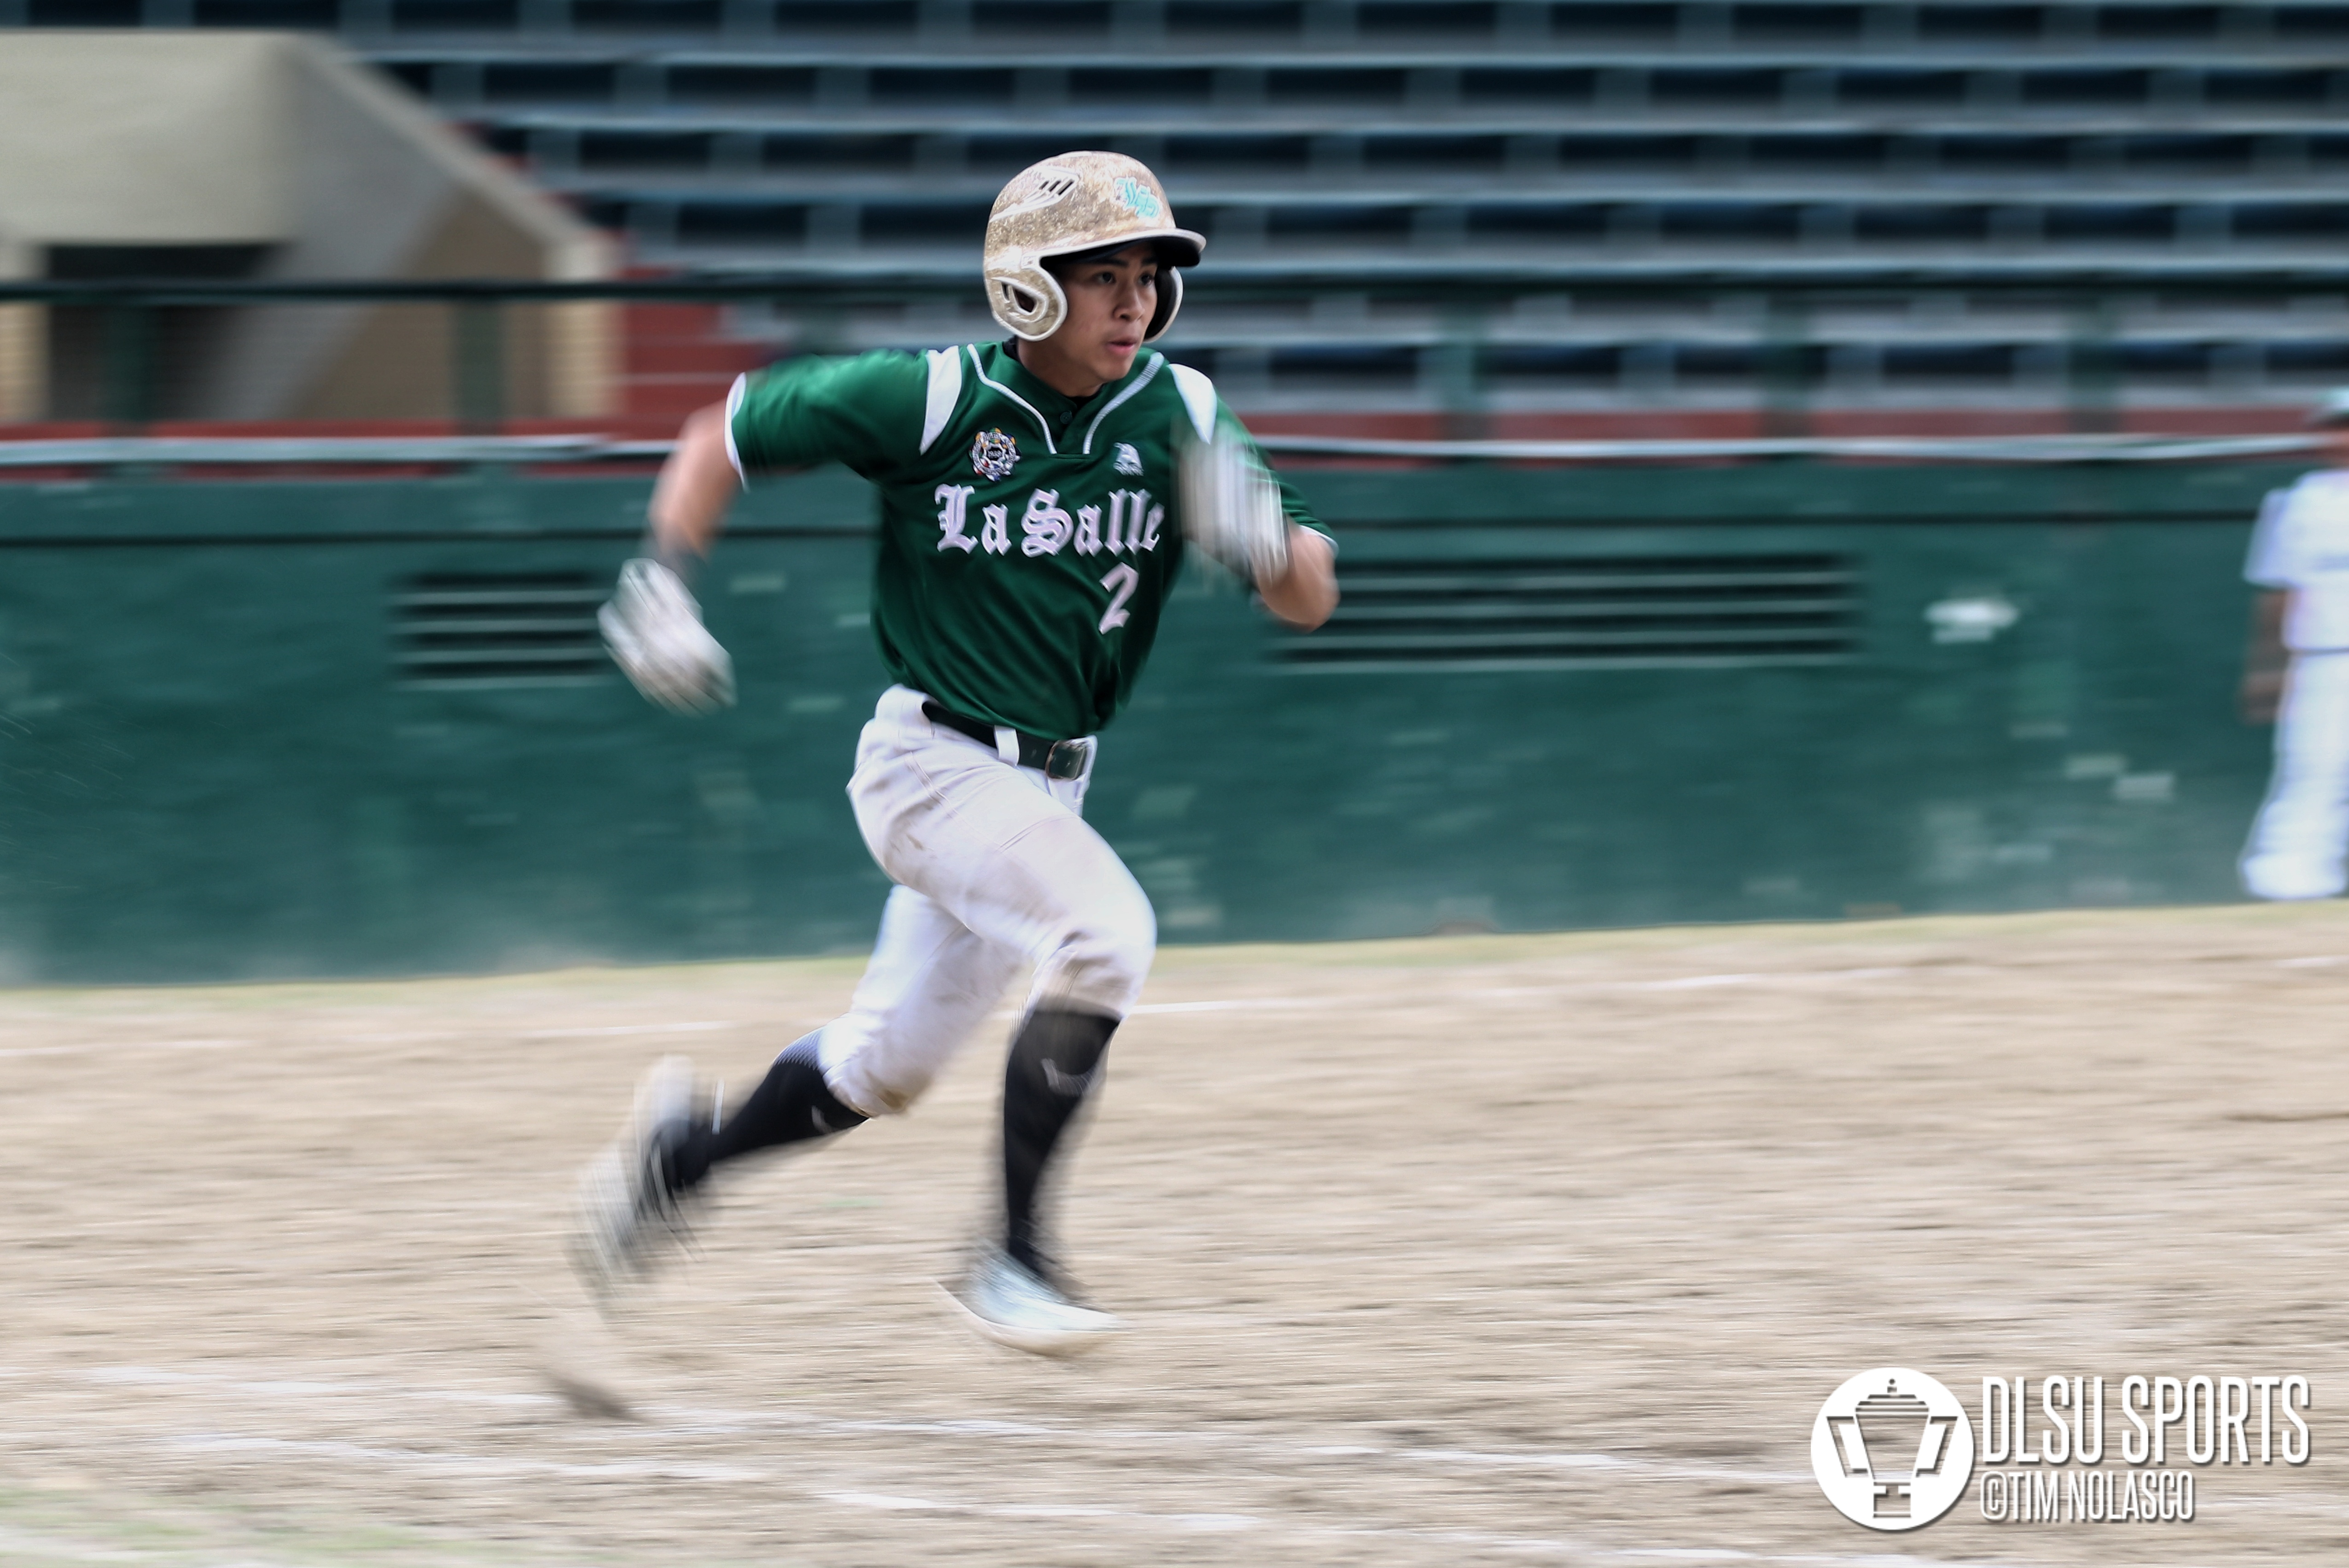 After doing in their first two games, the DLSU Green Batters look to carry the momentum to their next game.